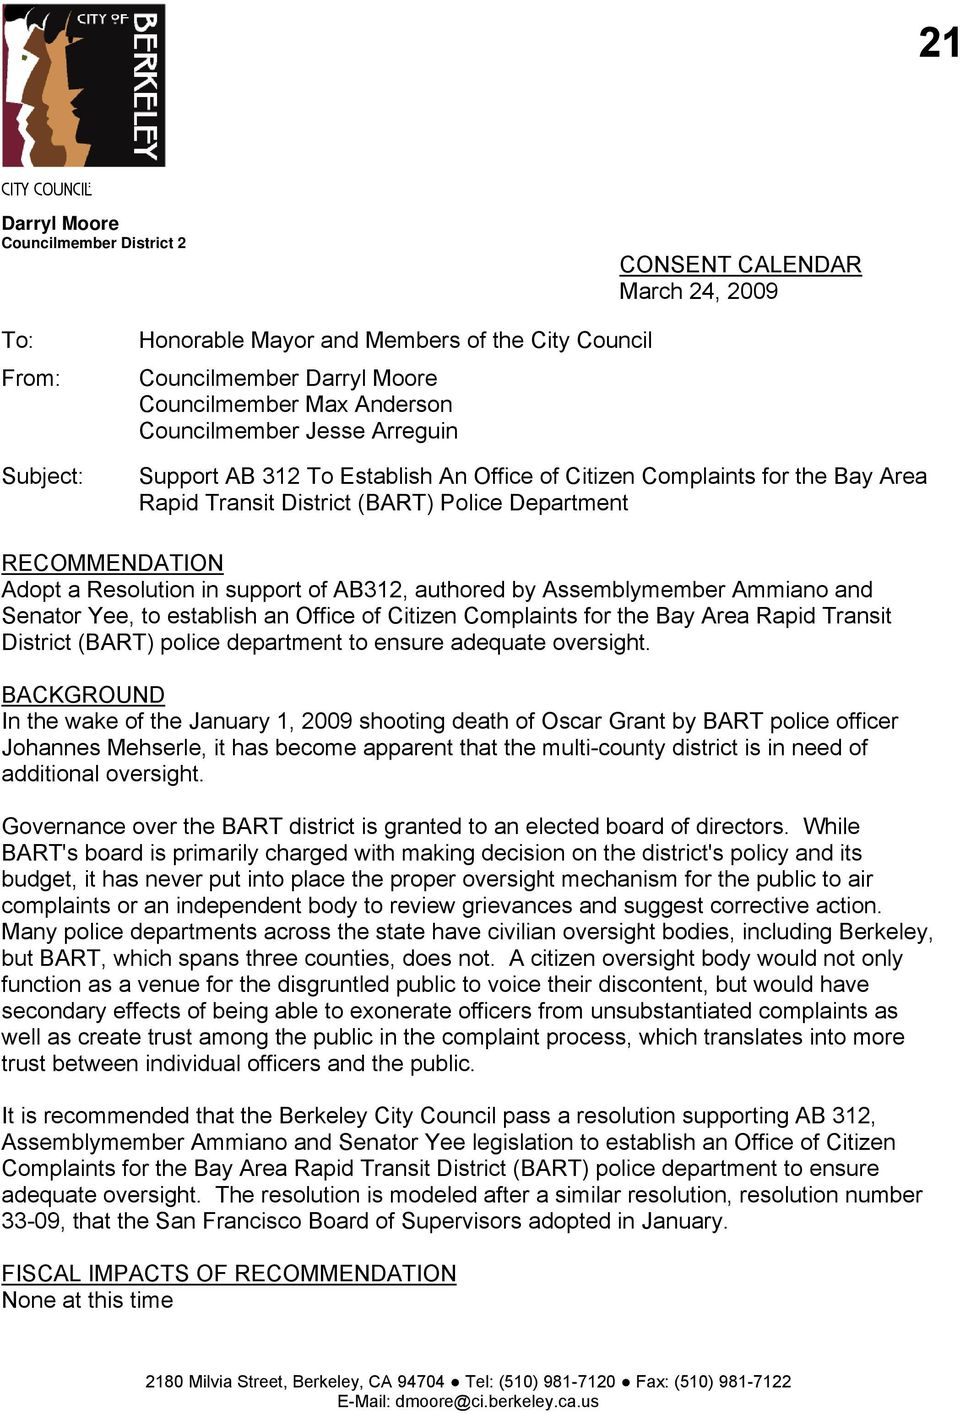 support of AB312, authored by Assemblymember Ammiano and Senator Yee, to establish an Office of Citizen Complaints for the Bay Area Rapid Transit District (BART) police department to ensure adequate